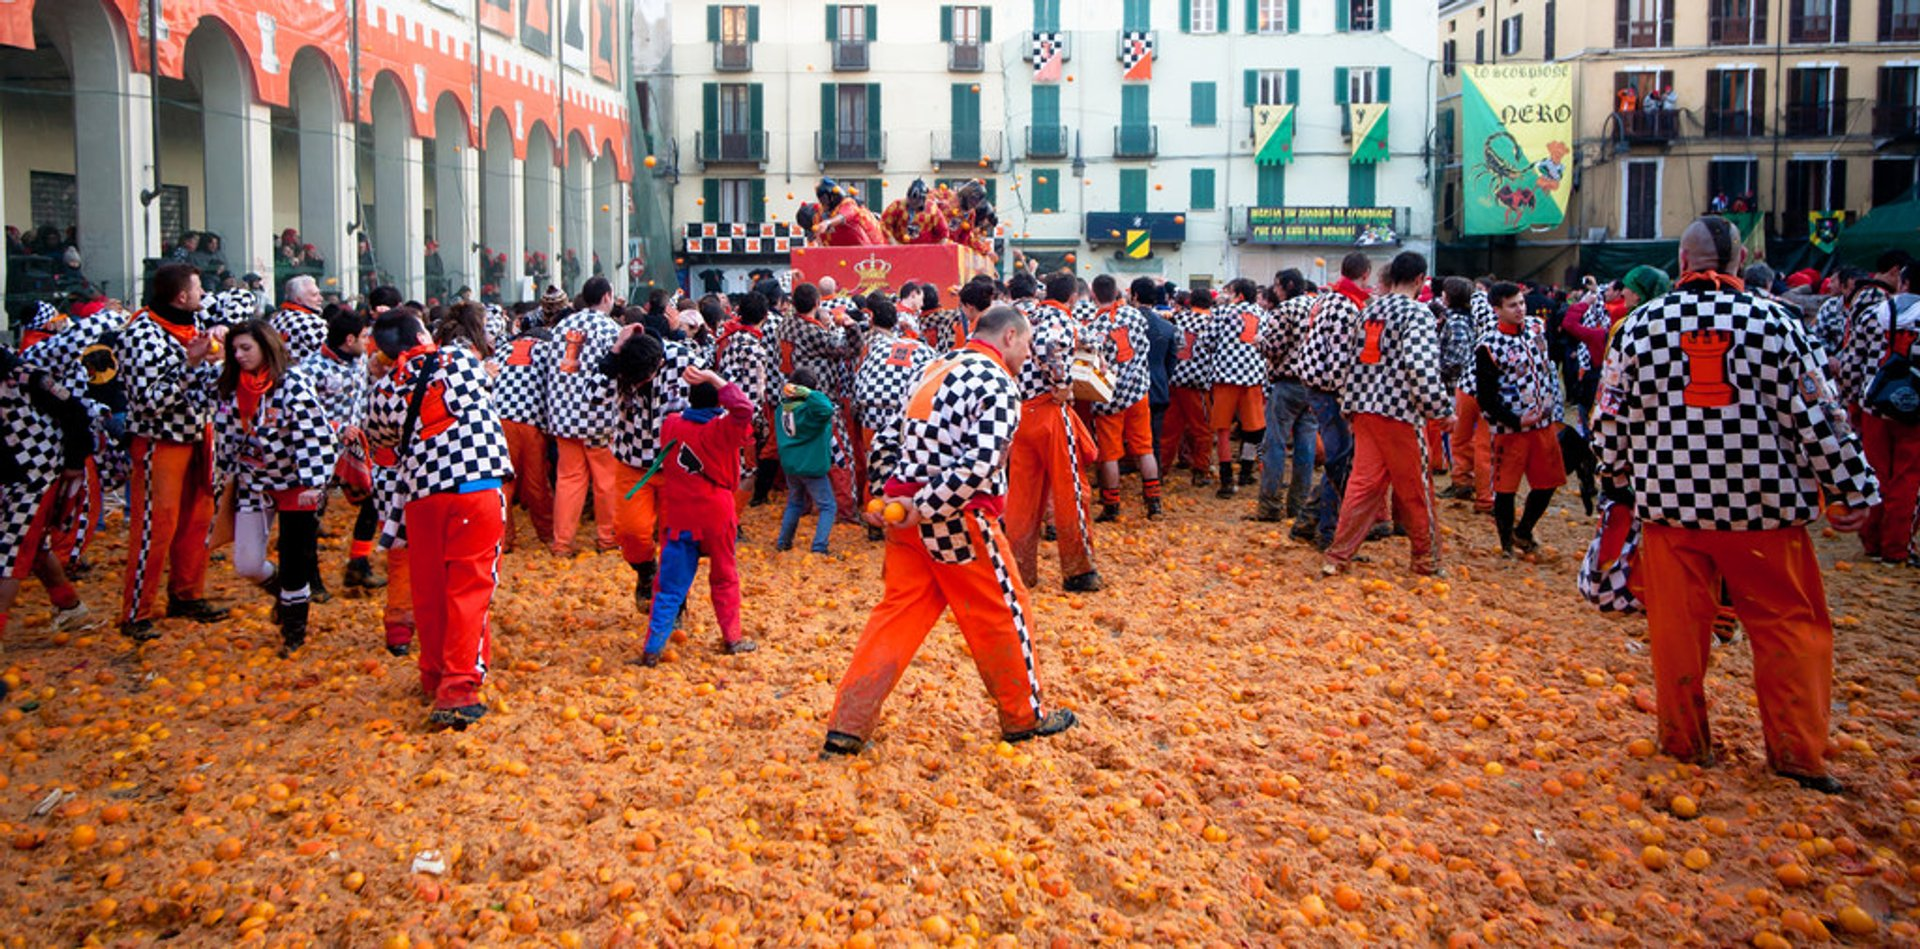 Best time for Ivrea Battle of the Oranges in Italy 2019